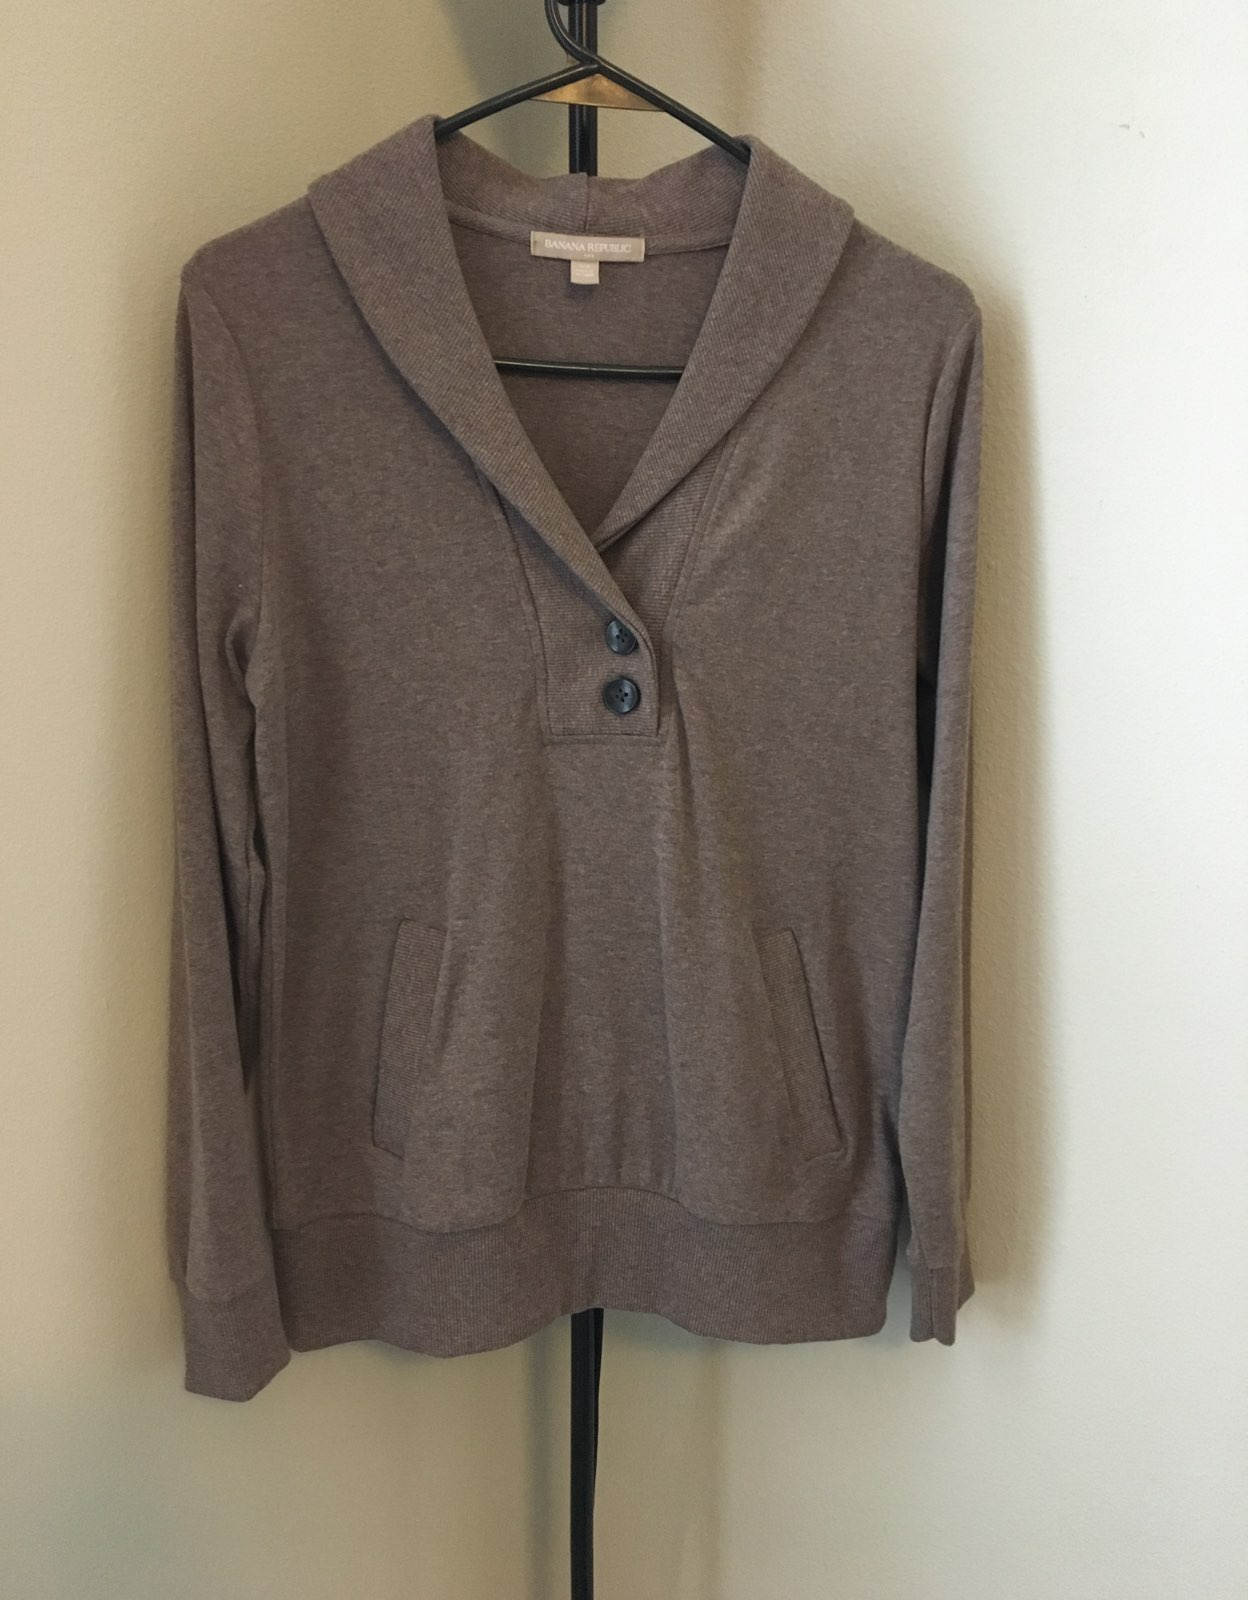 banana republic Heather Brown sweater - Mercari: BUY & SELL THINGS ...